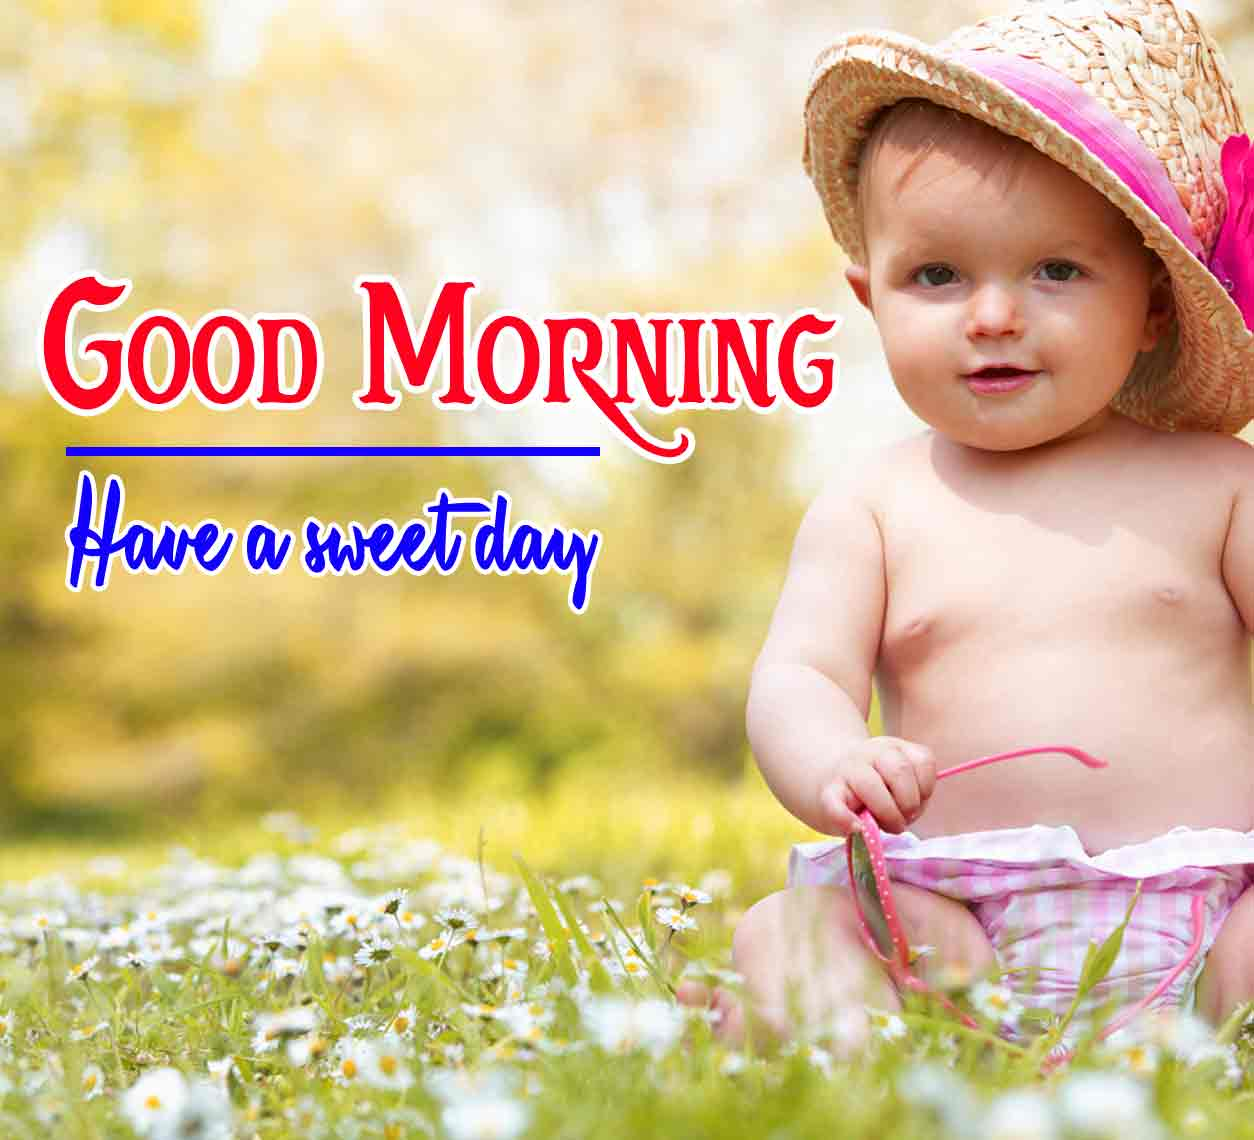 Good Morning 4k HD Images HD Pics pictures Download